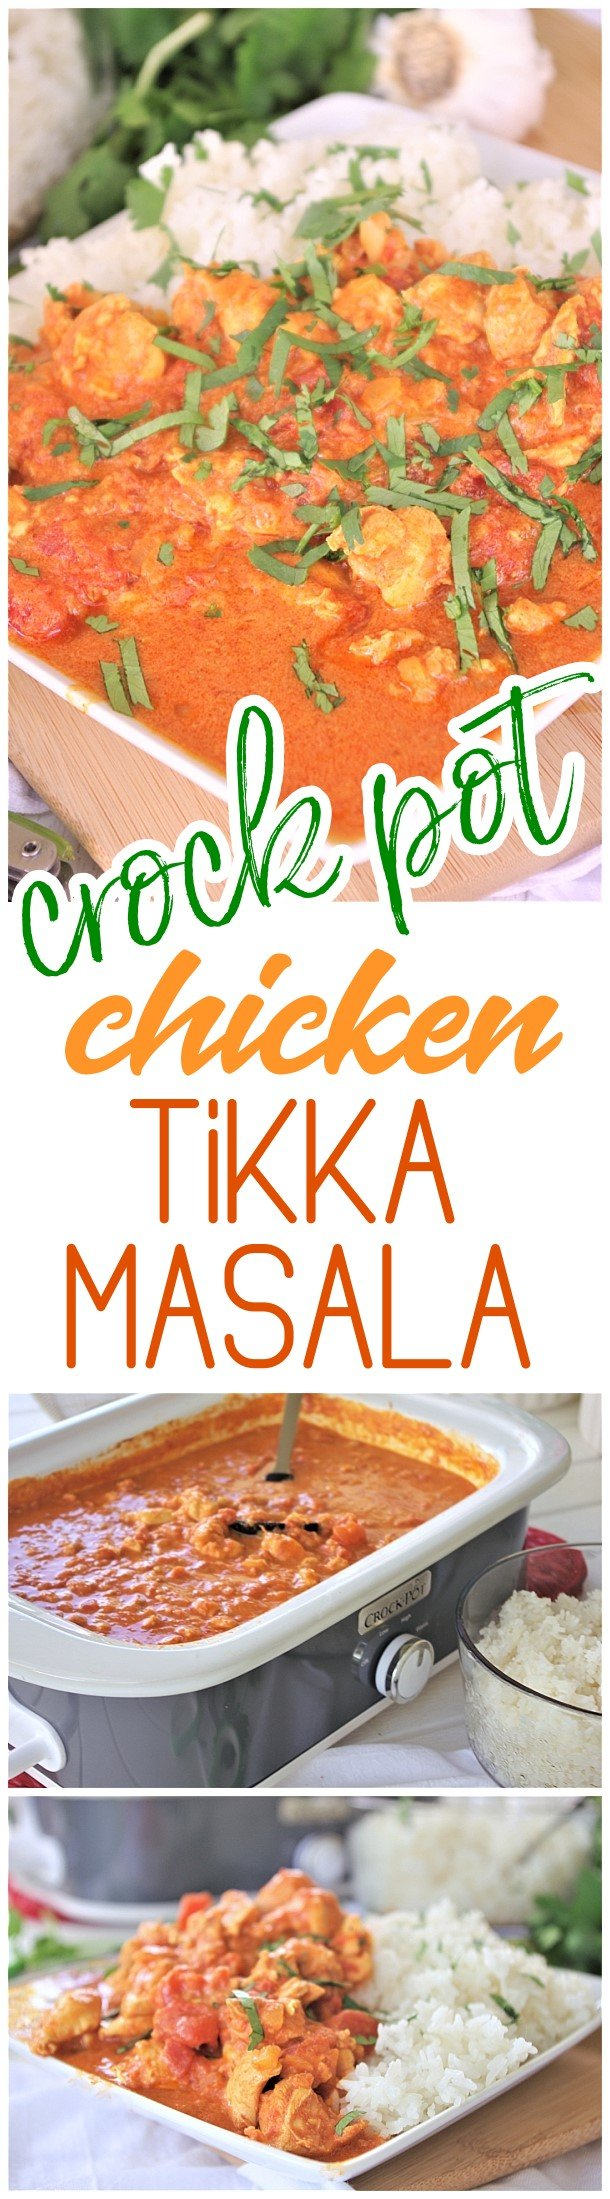 Crock Pot Chicken Tikka Masala Easy Family Supper Recipe via Dreaming in DIY - This easy family style slow cooker recipe for chicken tikka masala is going to become your new go-to and standby supper for busy weeknights and lazy weekends.  It's just so buttery and full of melt in your mouth Indian inspired deliciousness.